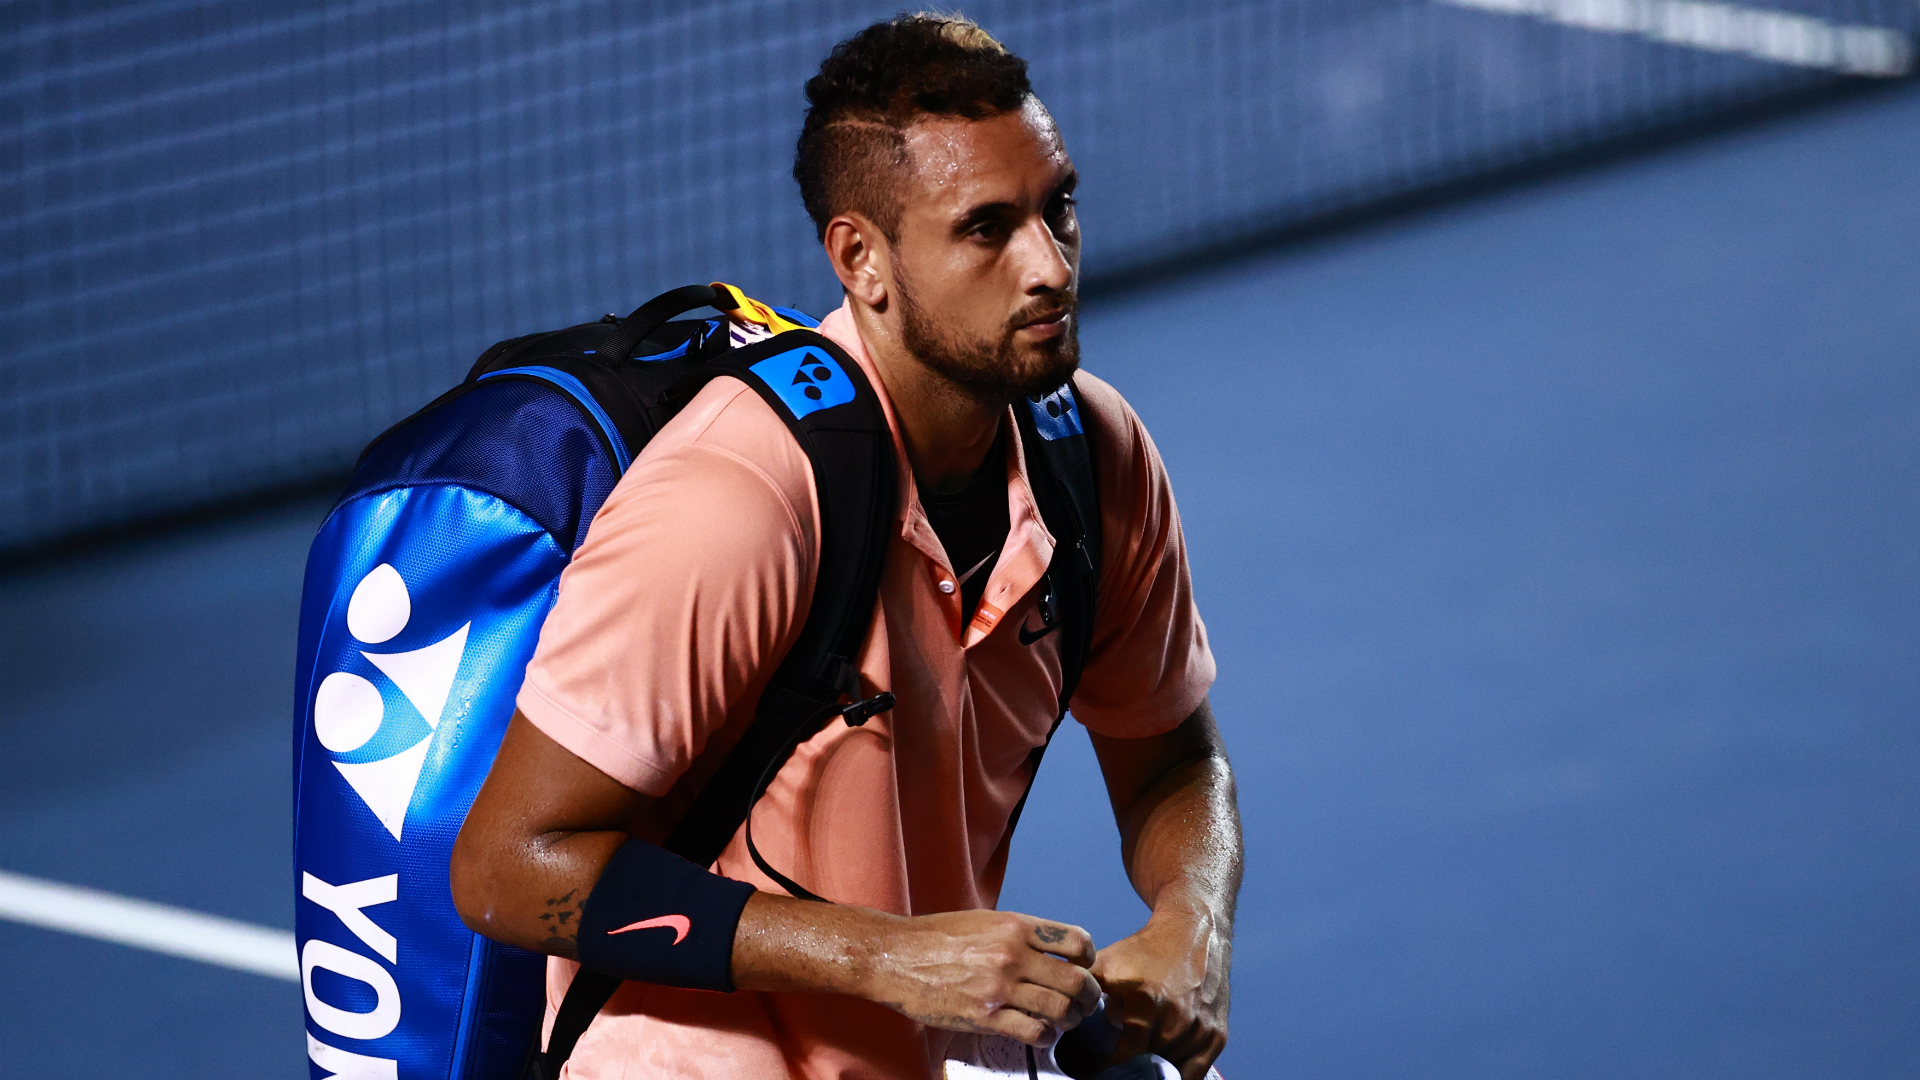 Kyrgios lashes out after Acapulco boos